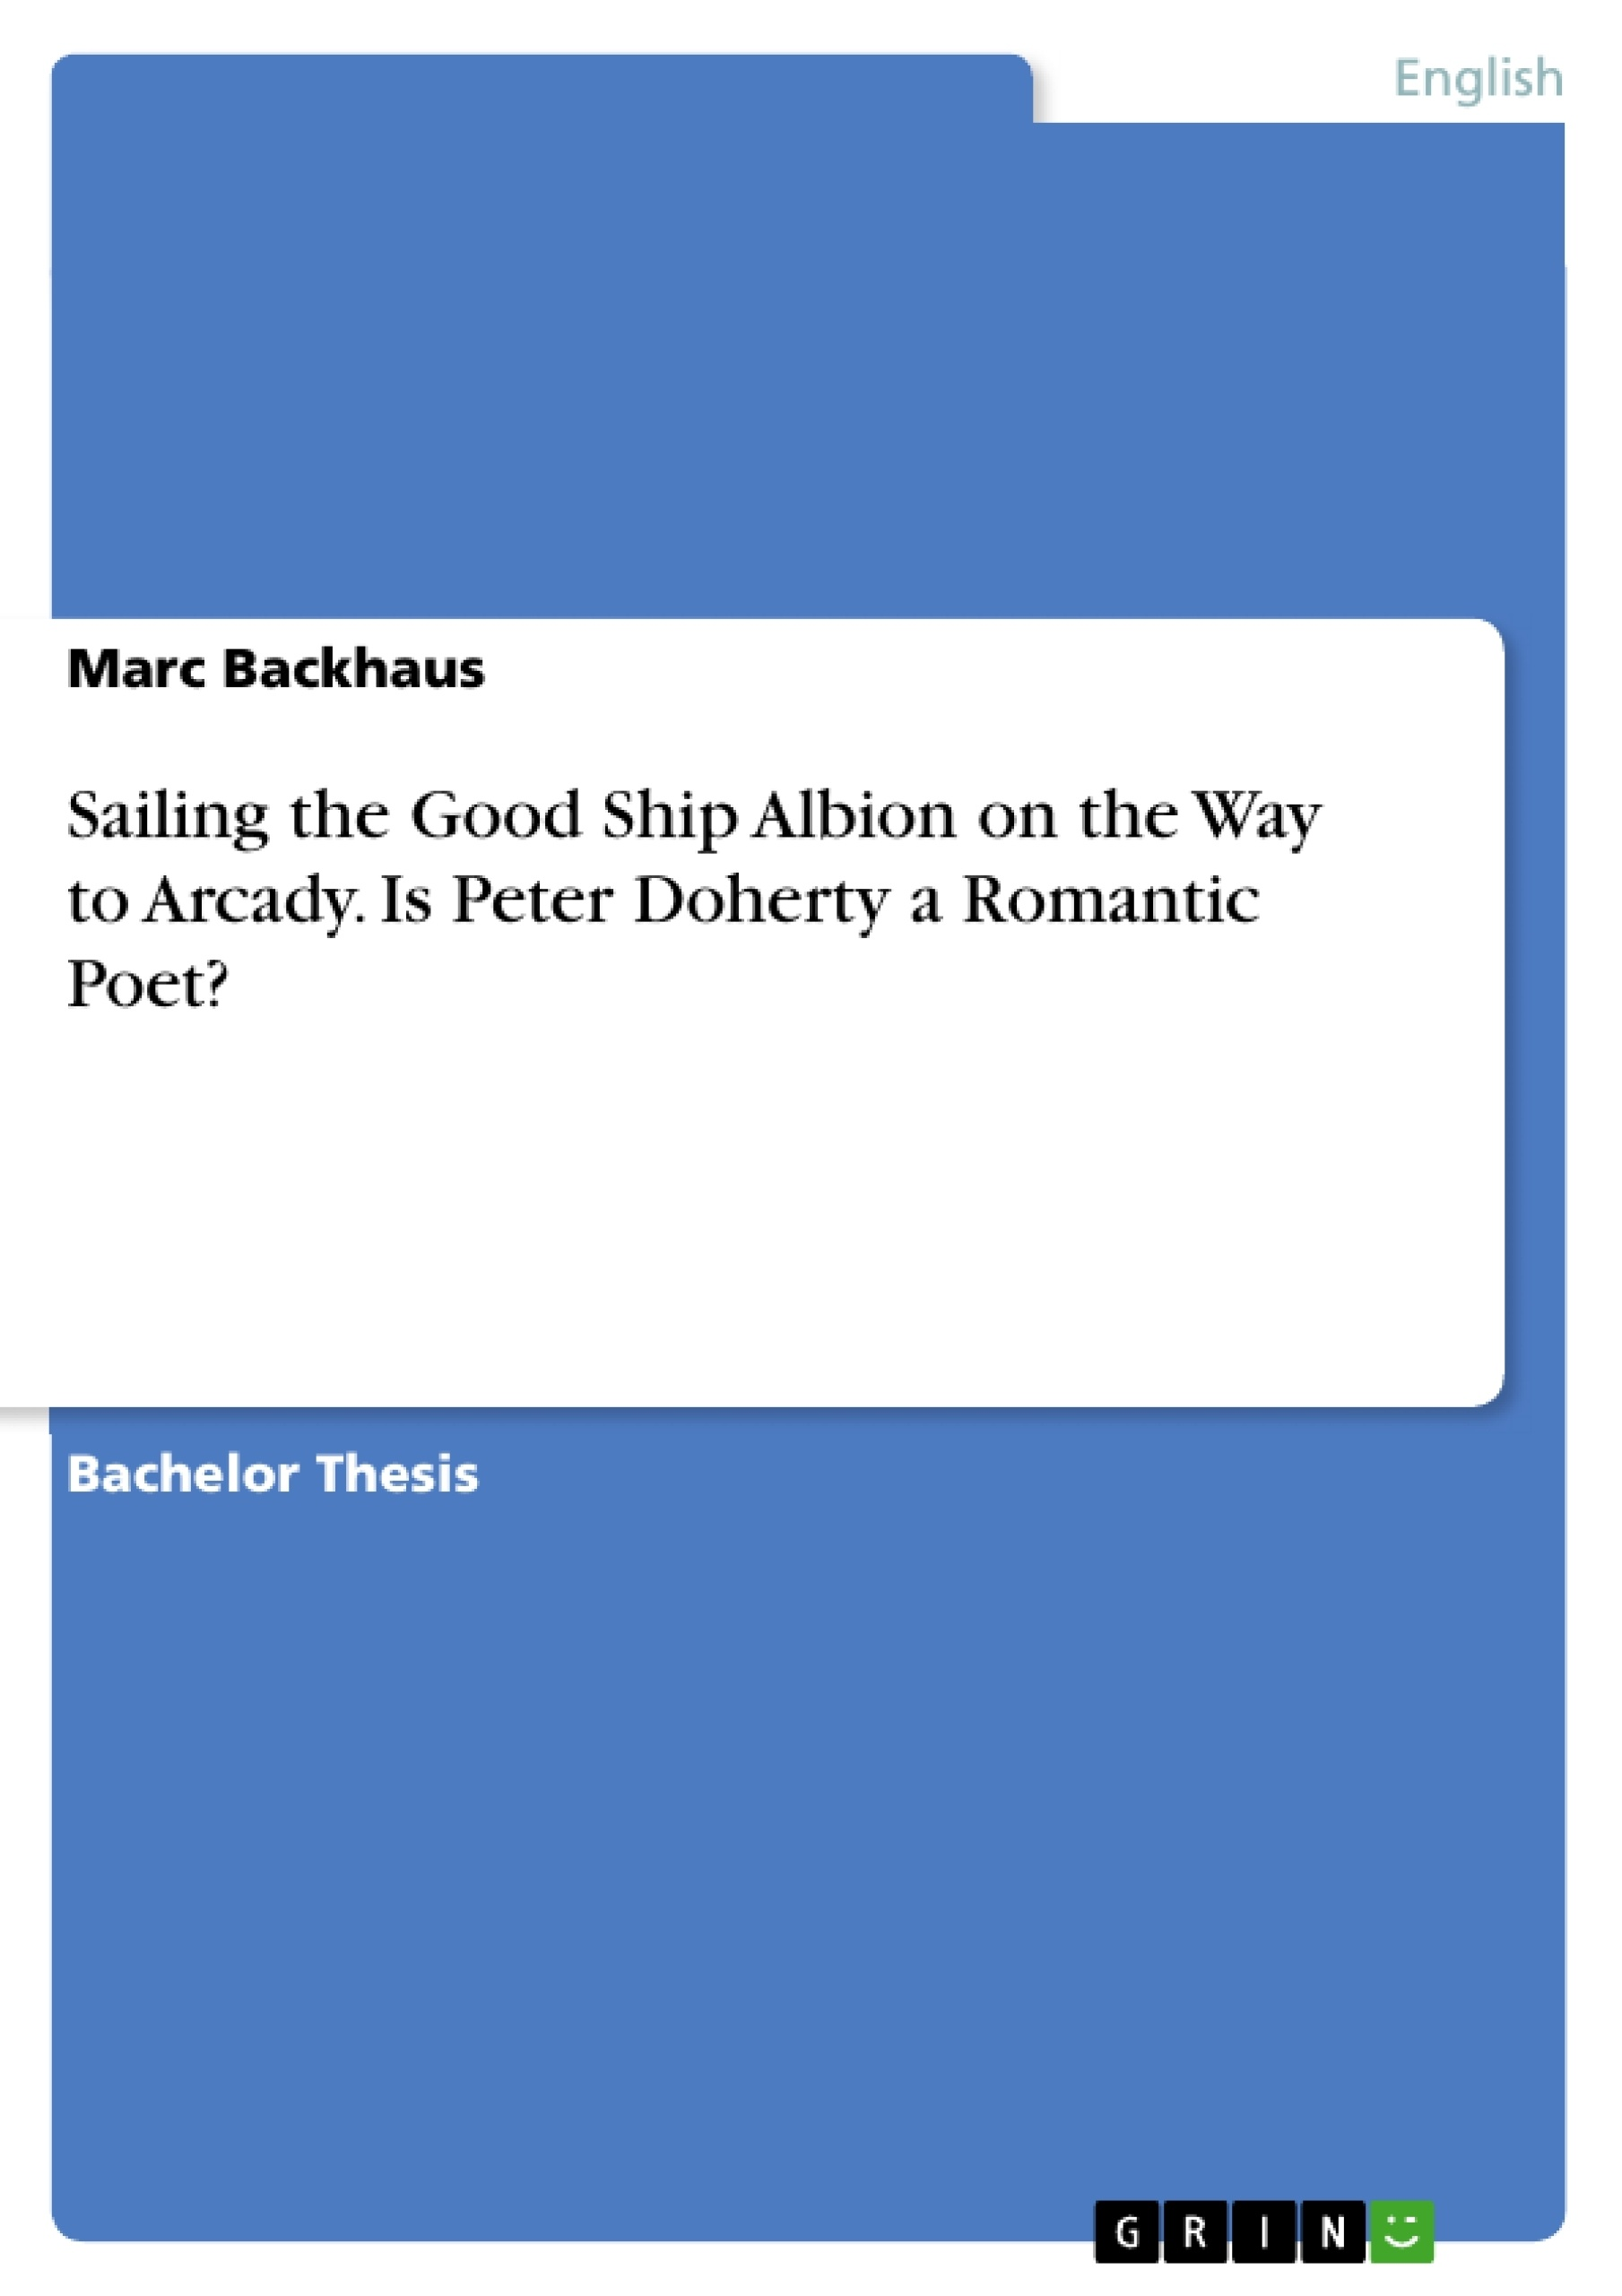 Title: Sailing the Good Ship Albion on the Way to Arcady. Is Peter Doherty a Romantic Poet?